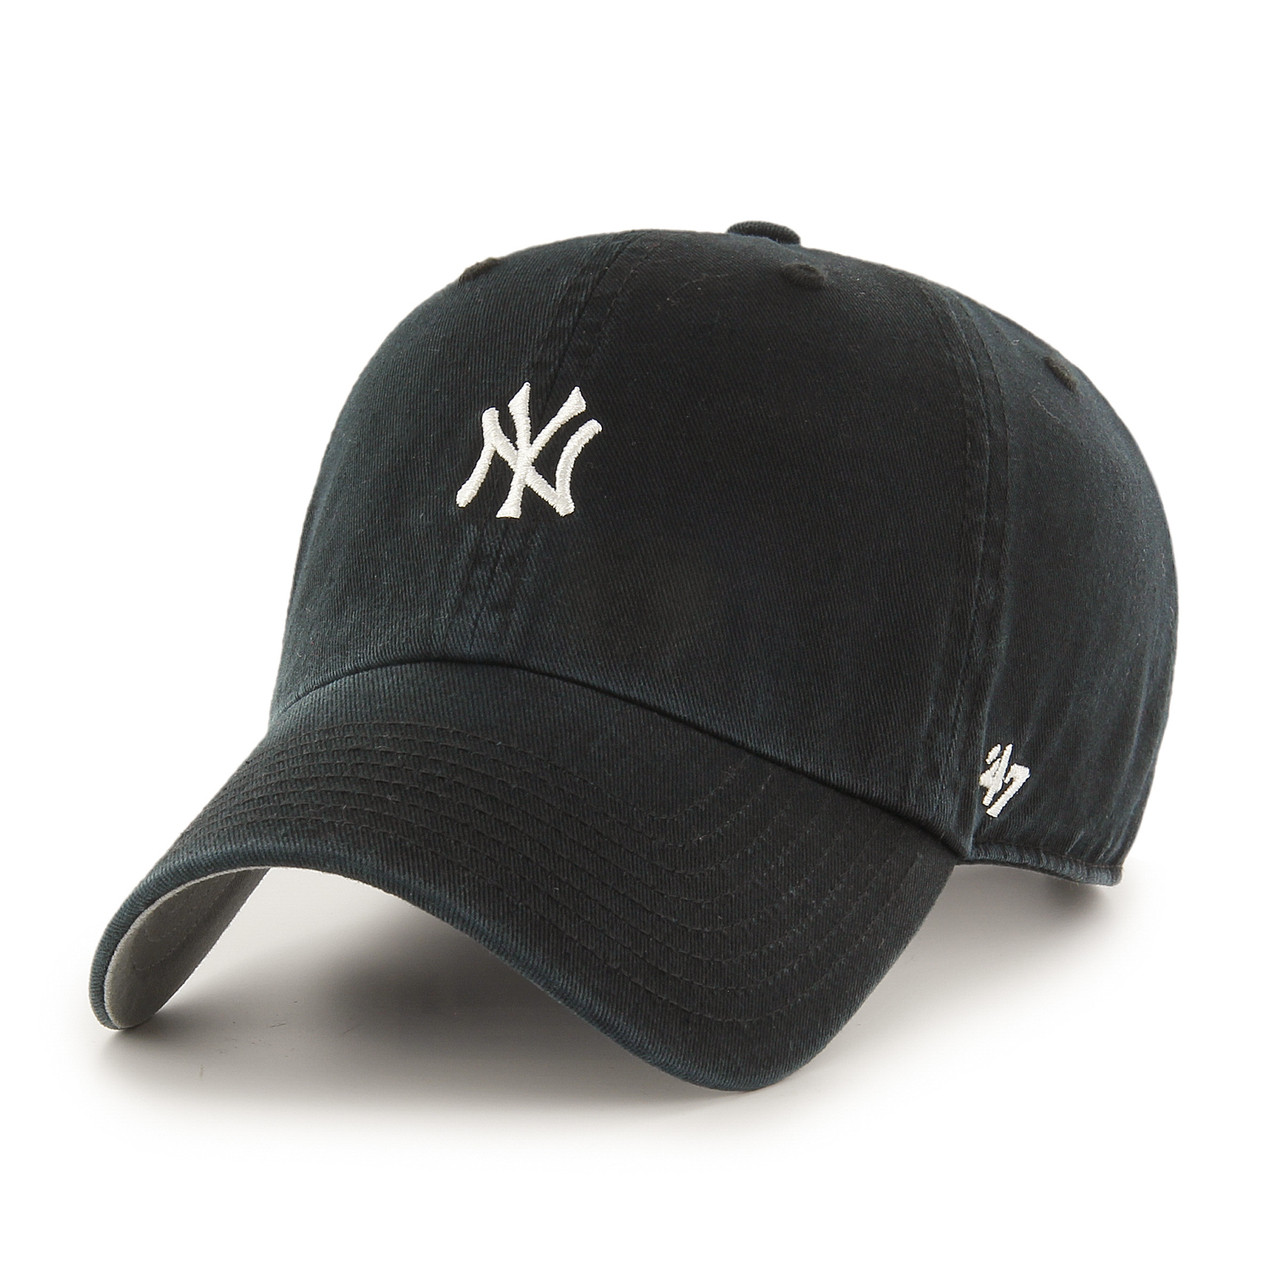 084ada06a81 New York Yankees Clean up Navy Small Logo 47Brand MLB Strapback Hat. 47Brand